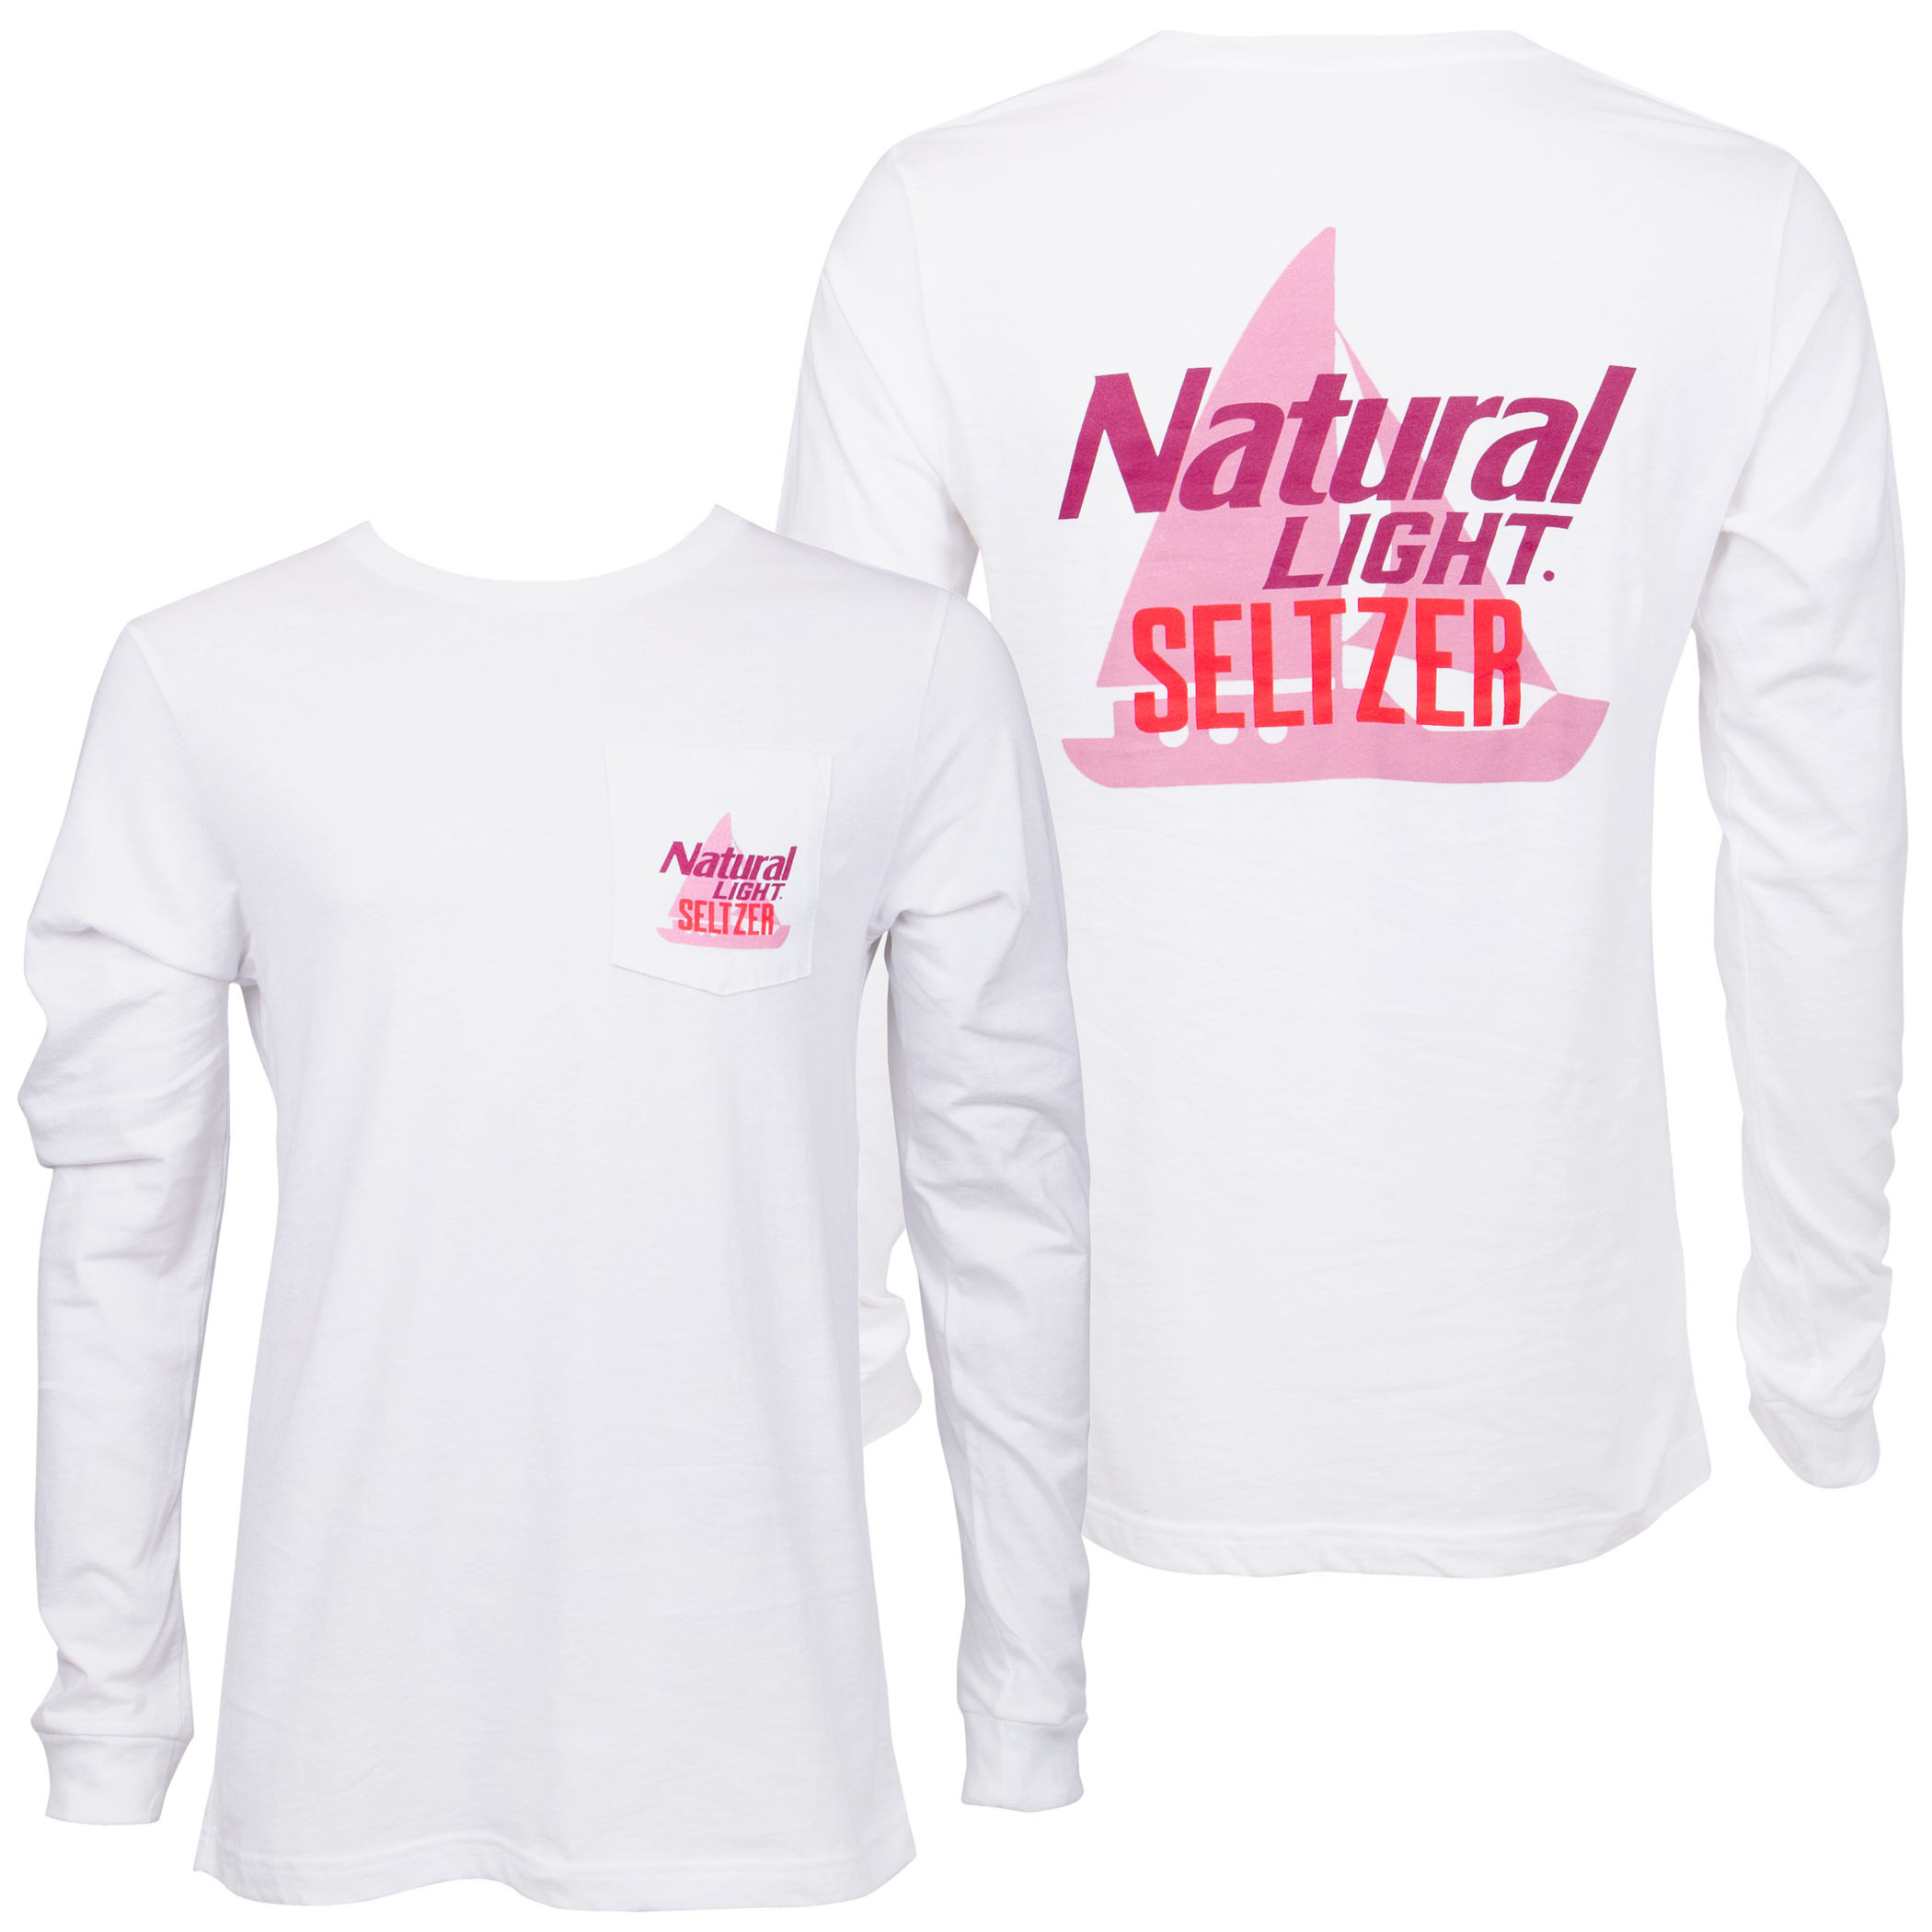 Natural Light Seltzer Boat Long Sleeve Pocket Shirt